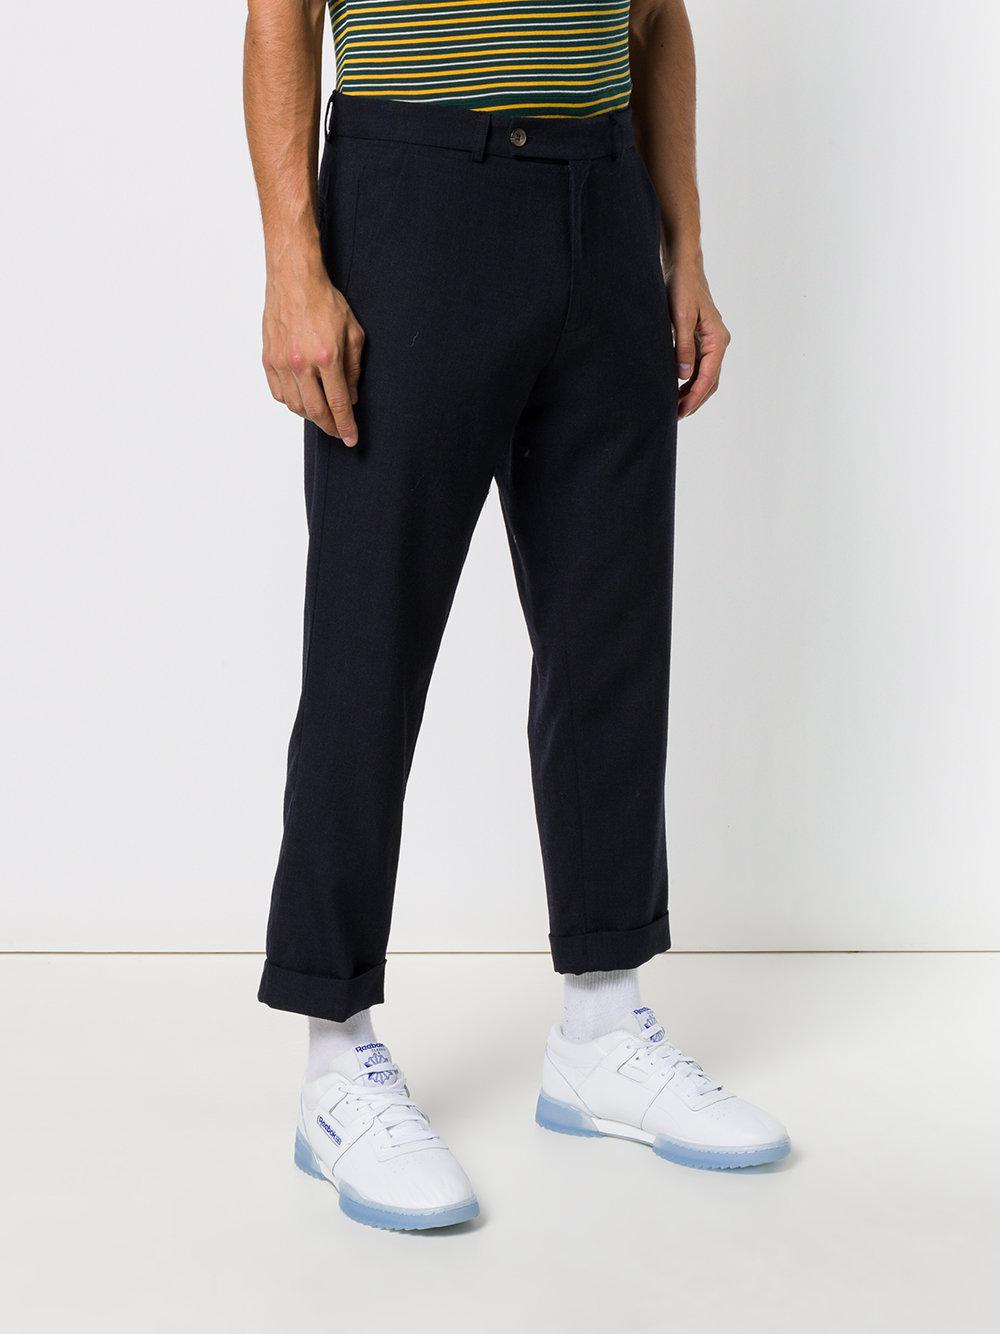 Societe Anonyme Wool 60 Winter Trousers in Blue for Men